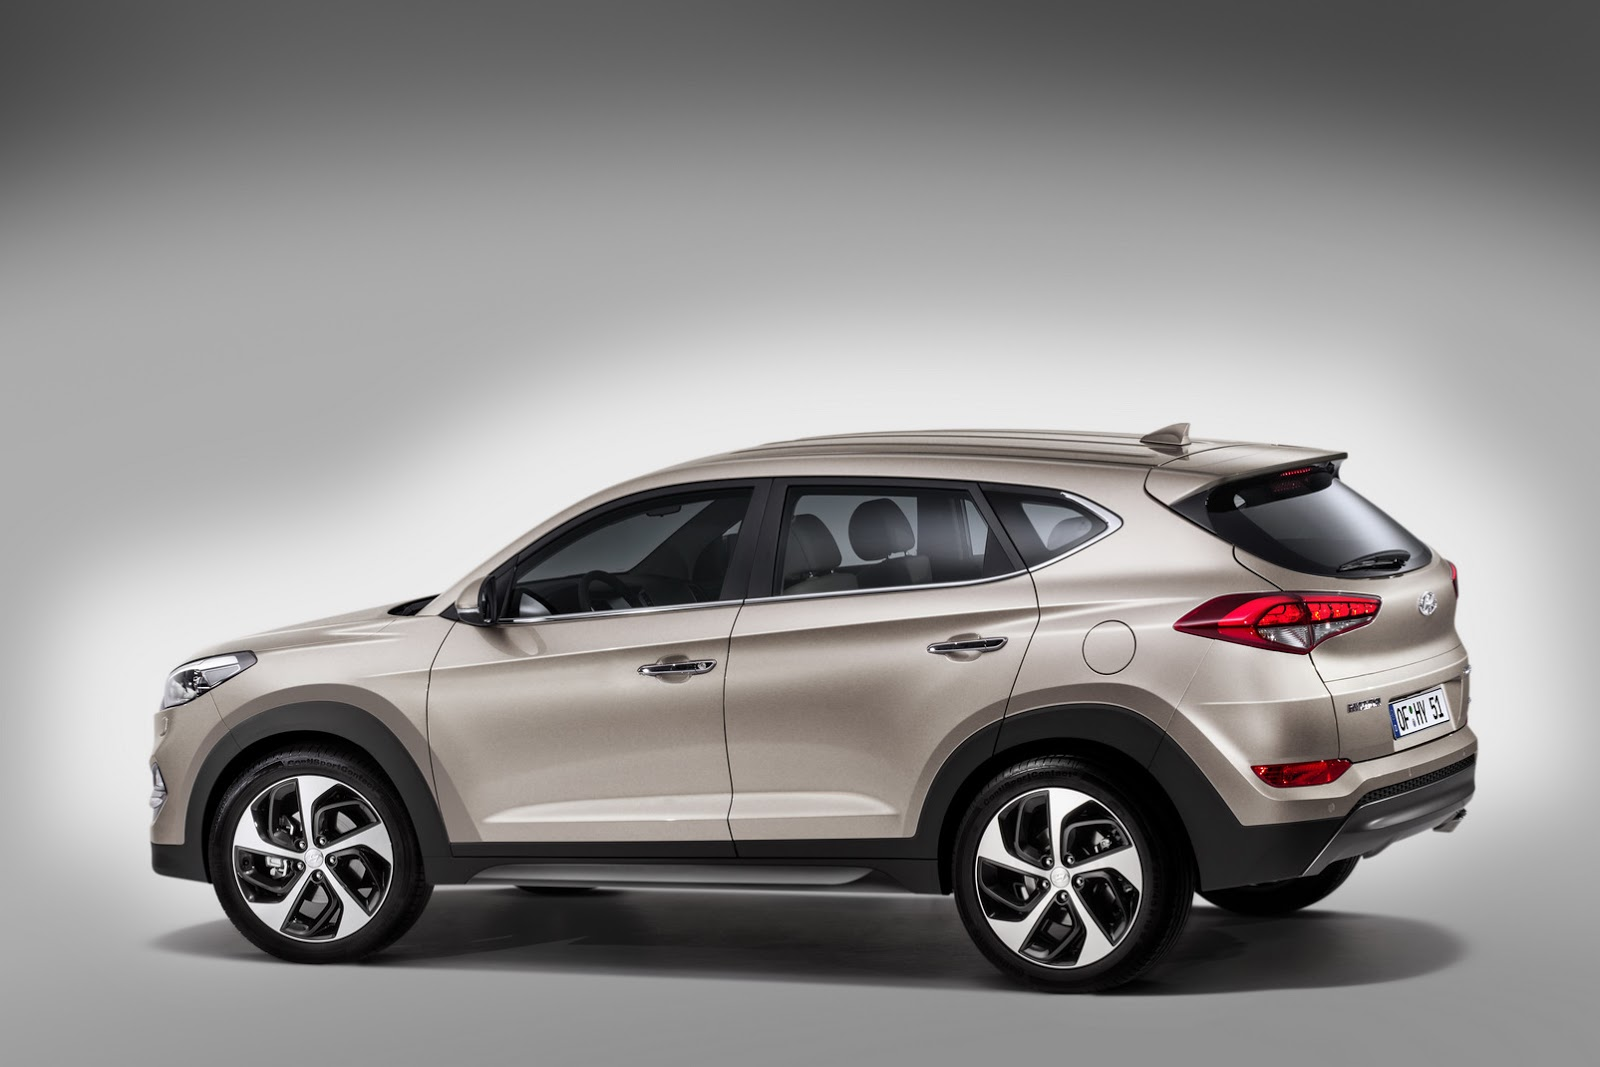 hyundai details new 2016 tucson gets 7 speed dct and 5 engines with up to 184ps carscoops. Black Bedroom Furniture Sets. Home Design Ideas